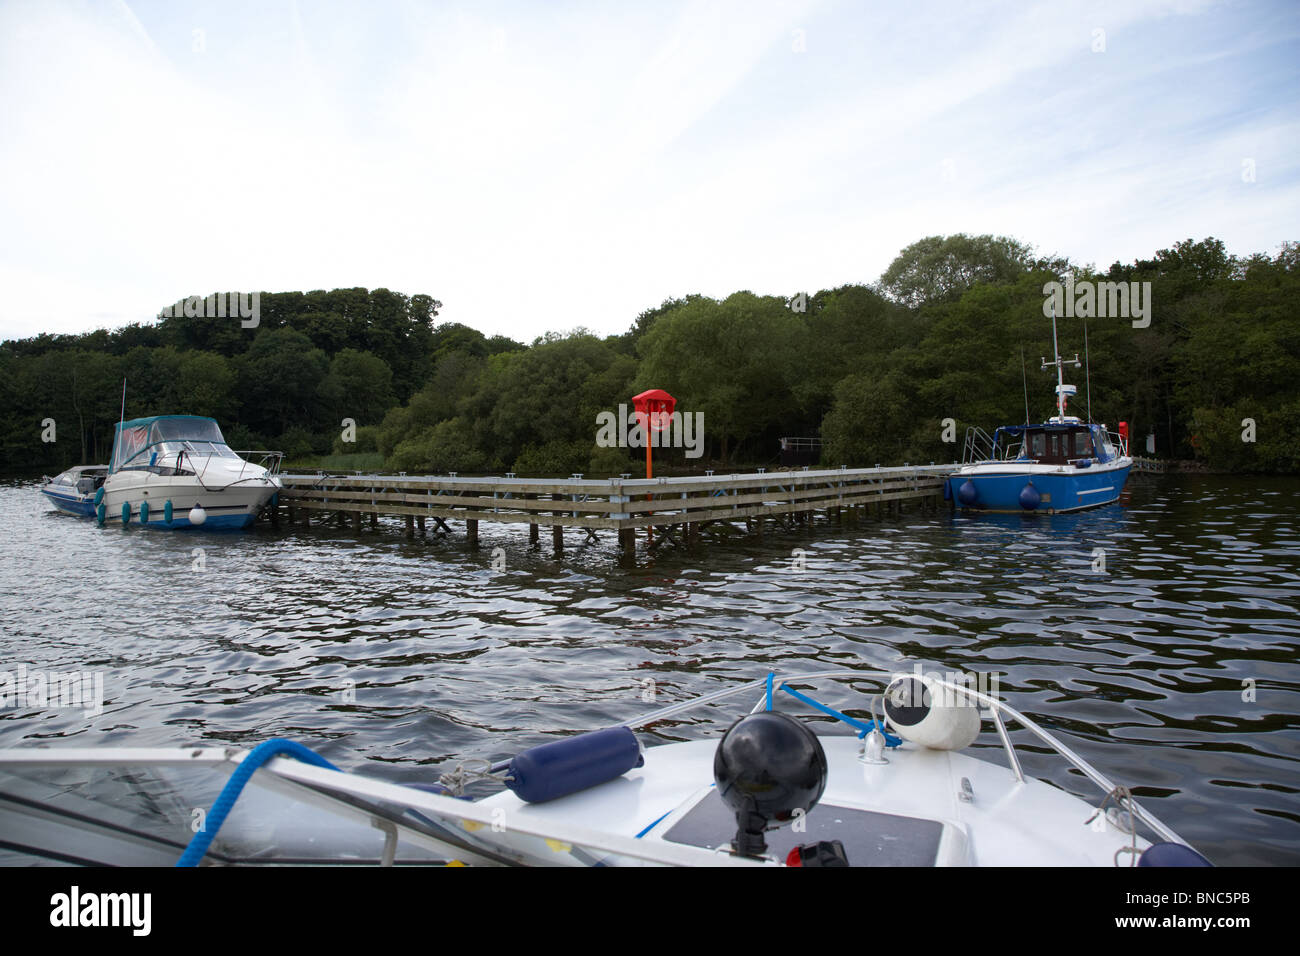 small boat approaching public jetty on rams island in lough neagh northern ireland uk - Stock Image